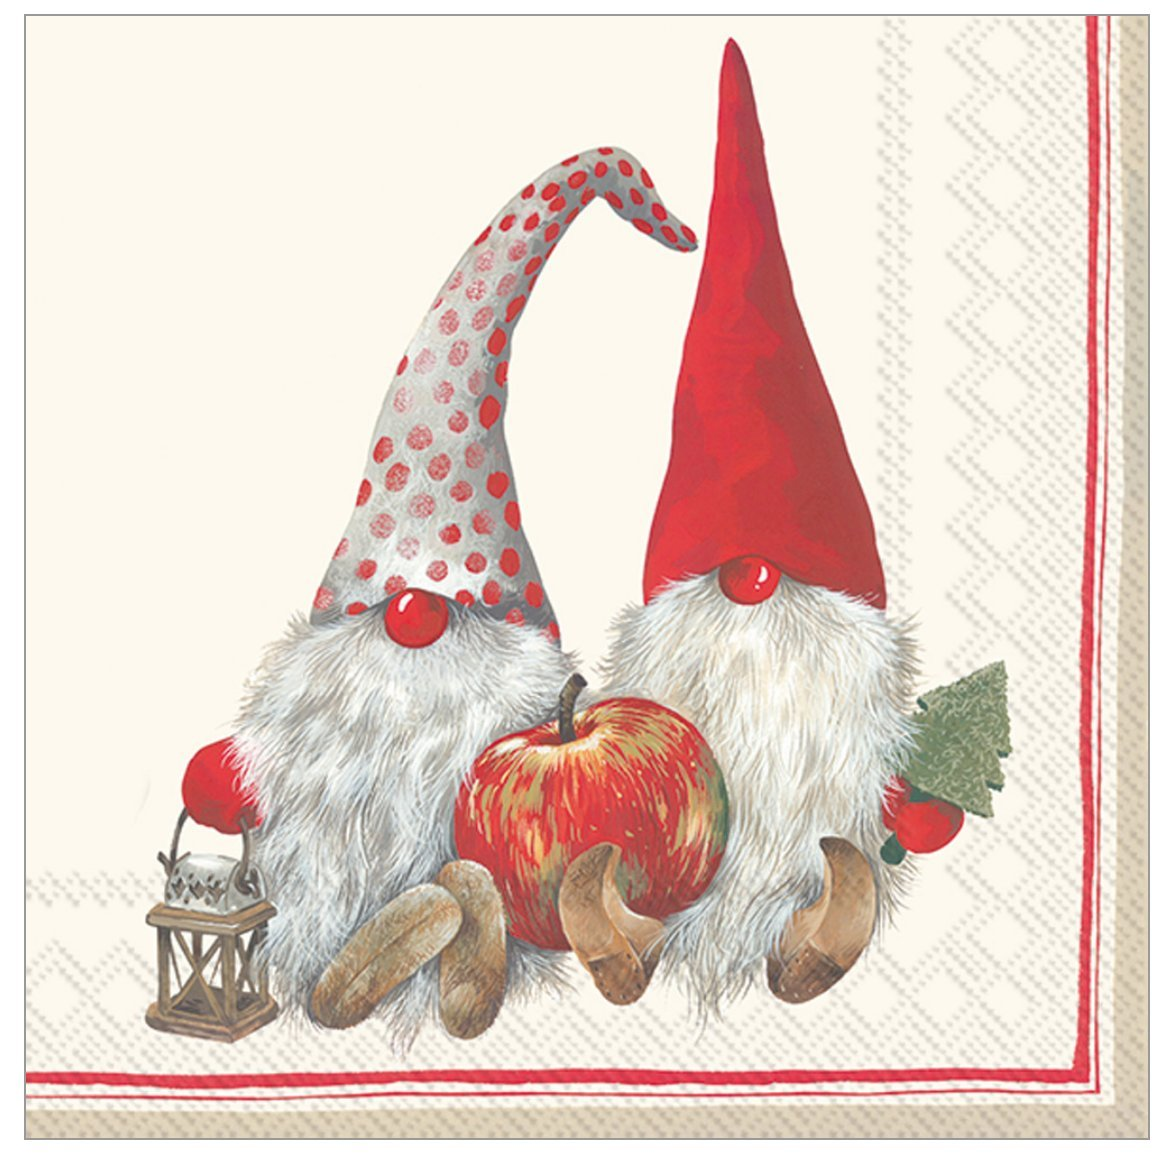 Boston International C743010 Holiday Paper Cocktail Napkins, 20-Count, Friendly Tomte-Red